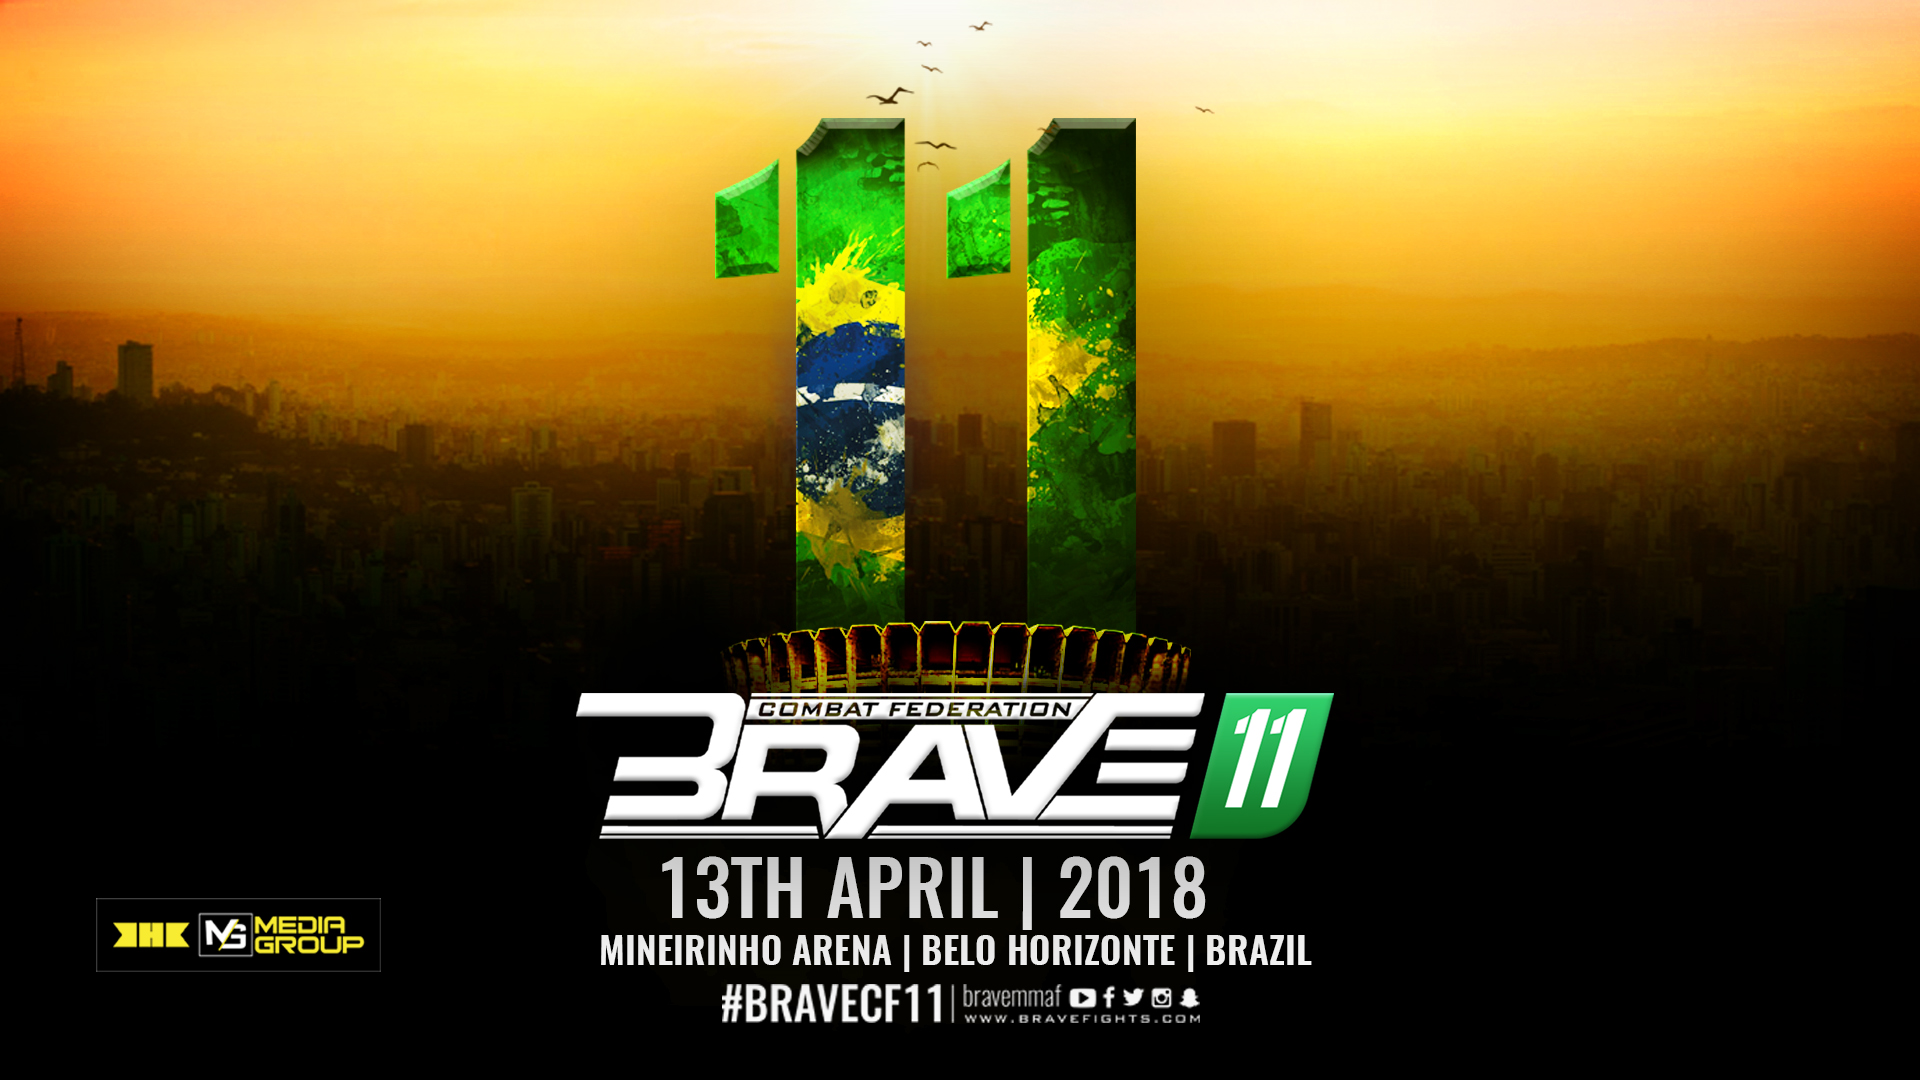 Brave CF to be hosted in the biggest indoor sporting arena in Brazil -